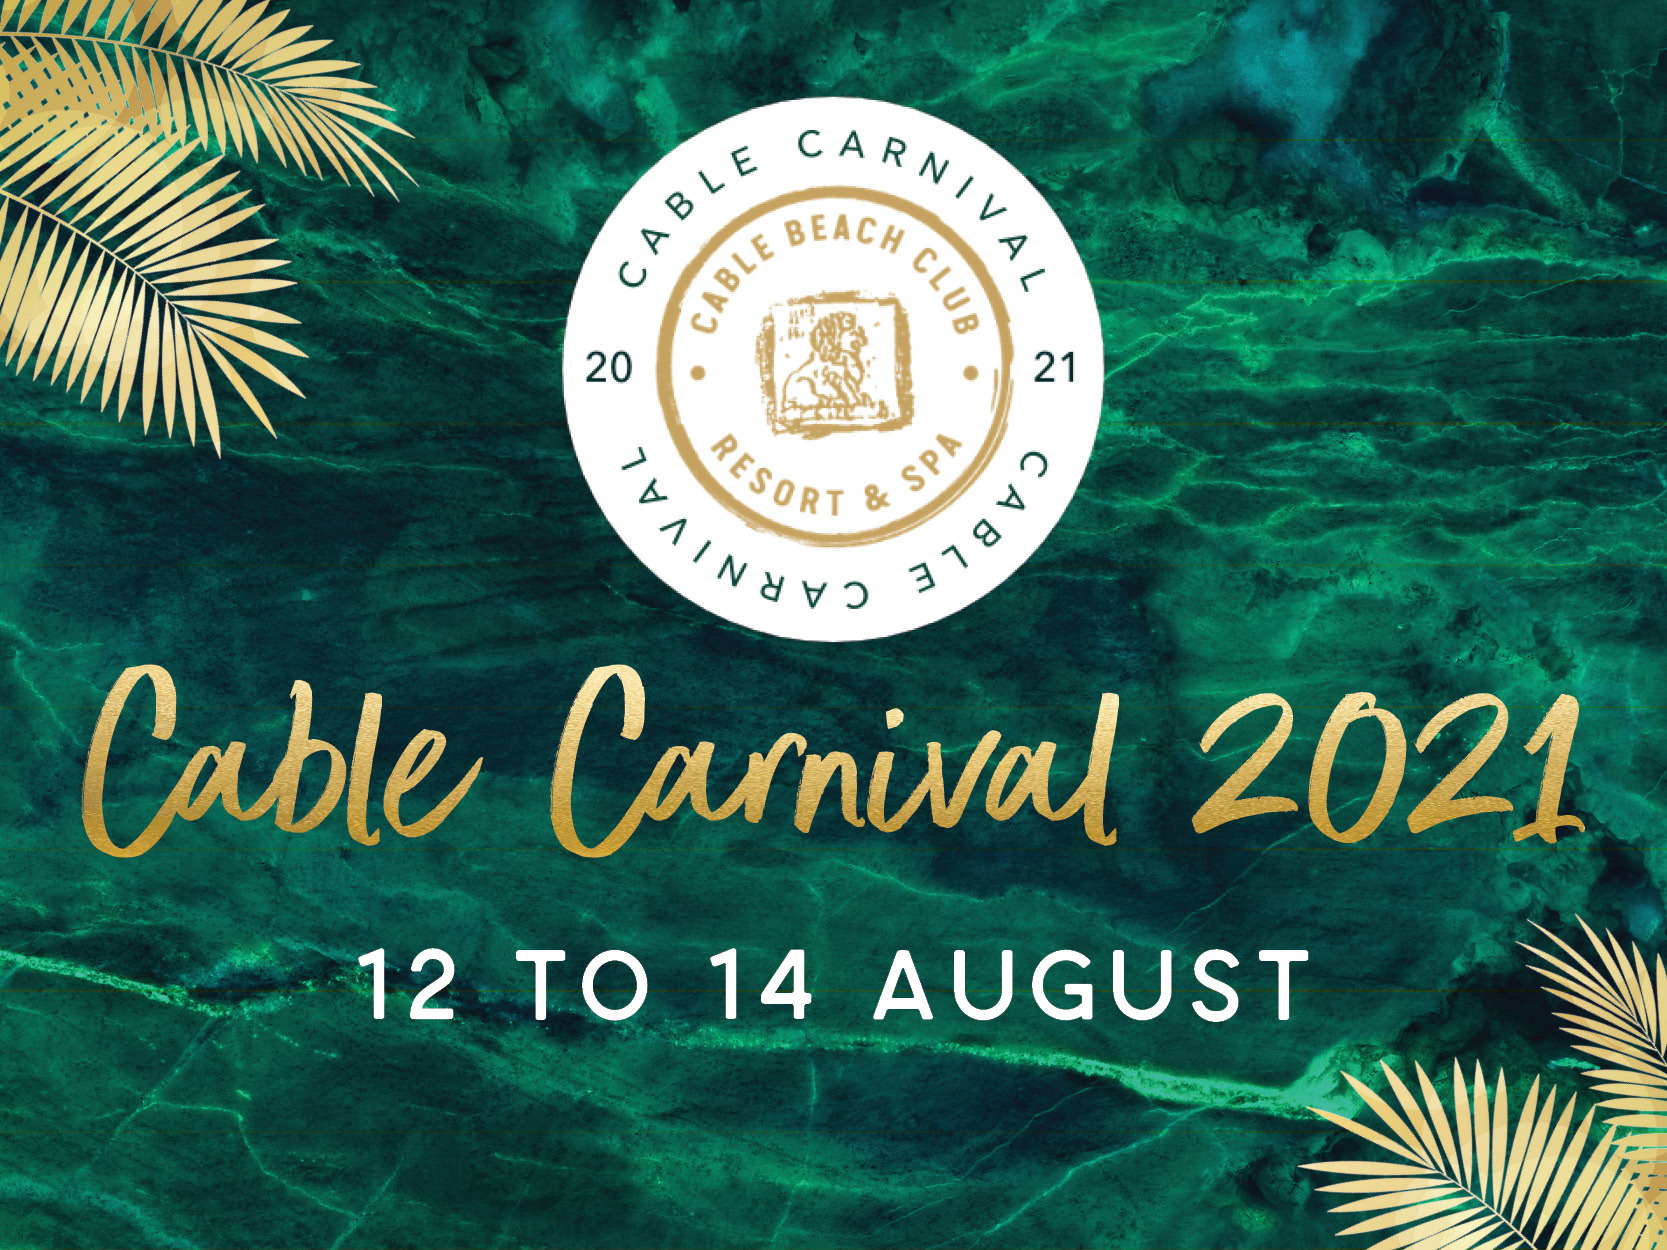 Cable Carnival is THE place to be this Broome Cup week